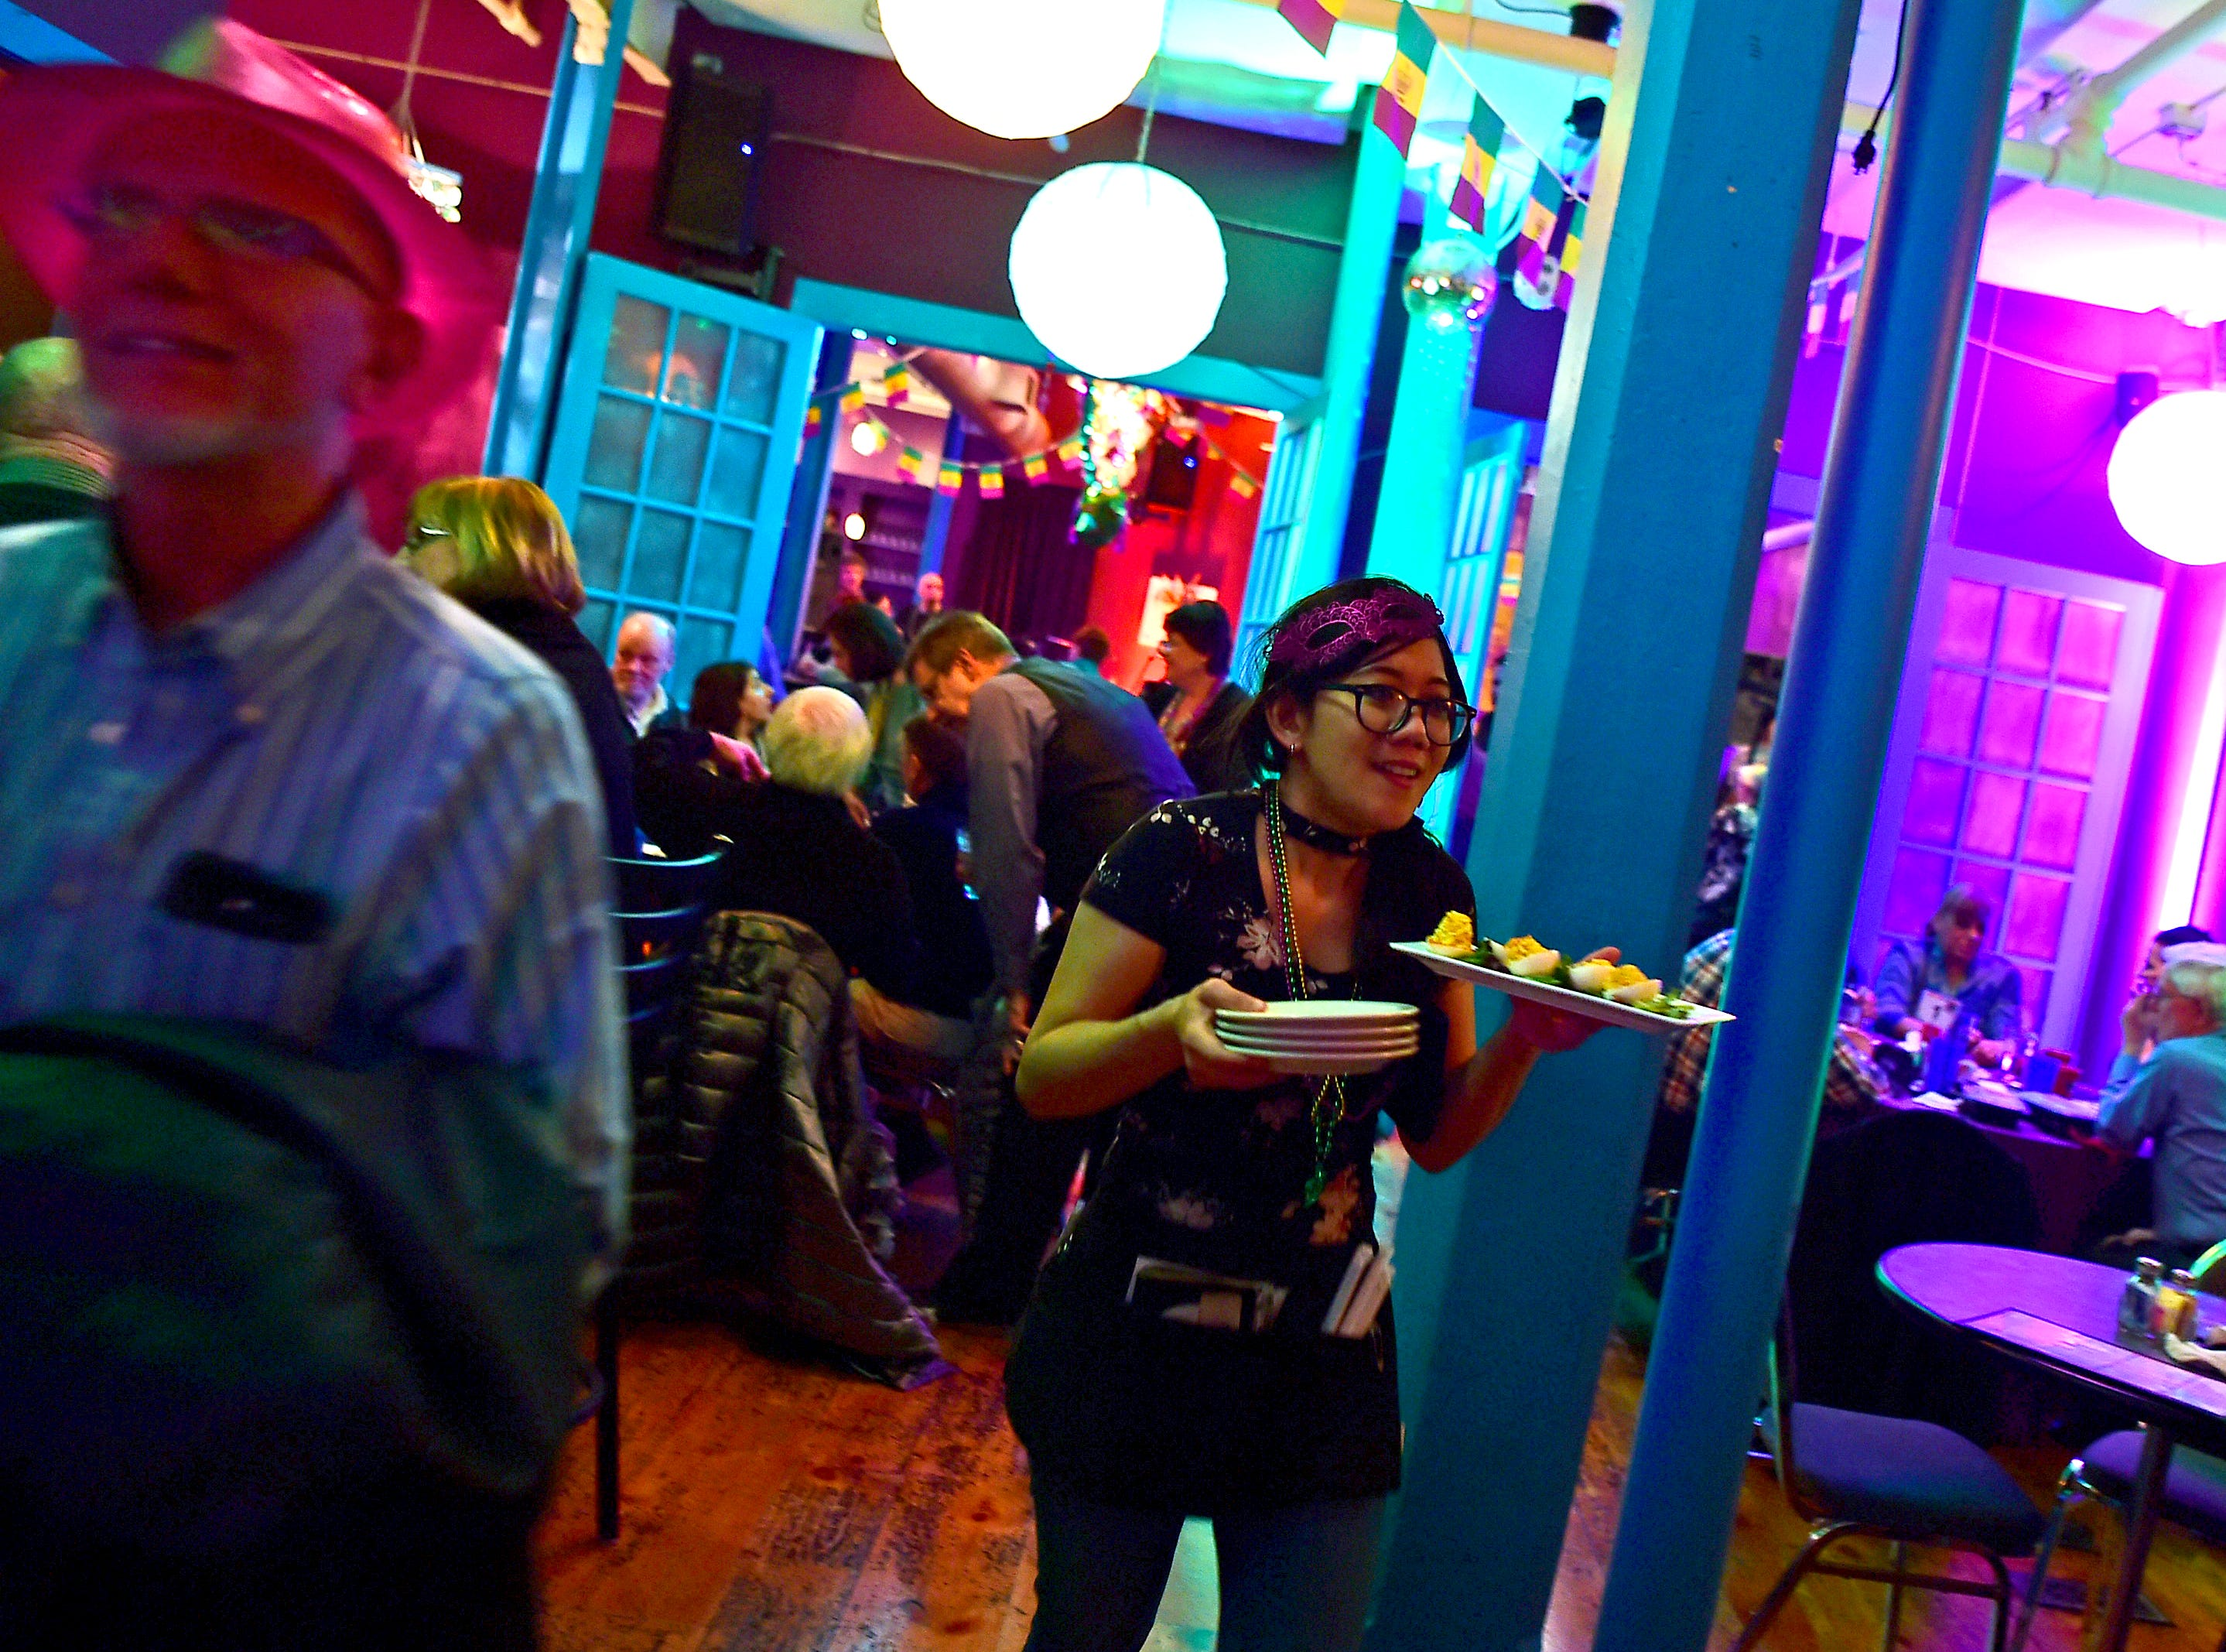 The Southern Tier celebrated Fat Tuesday at The Lost Dog Cafe & Lounge on Tuesday, as the Binghamton restaurant hosted its 25th annual Rockin' Mardi Gras Celebration. March 5, 2019.